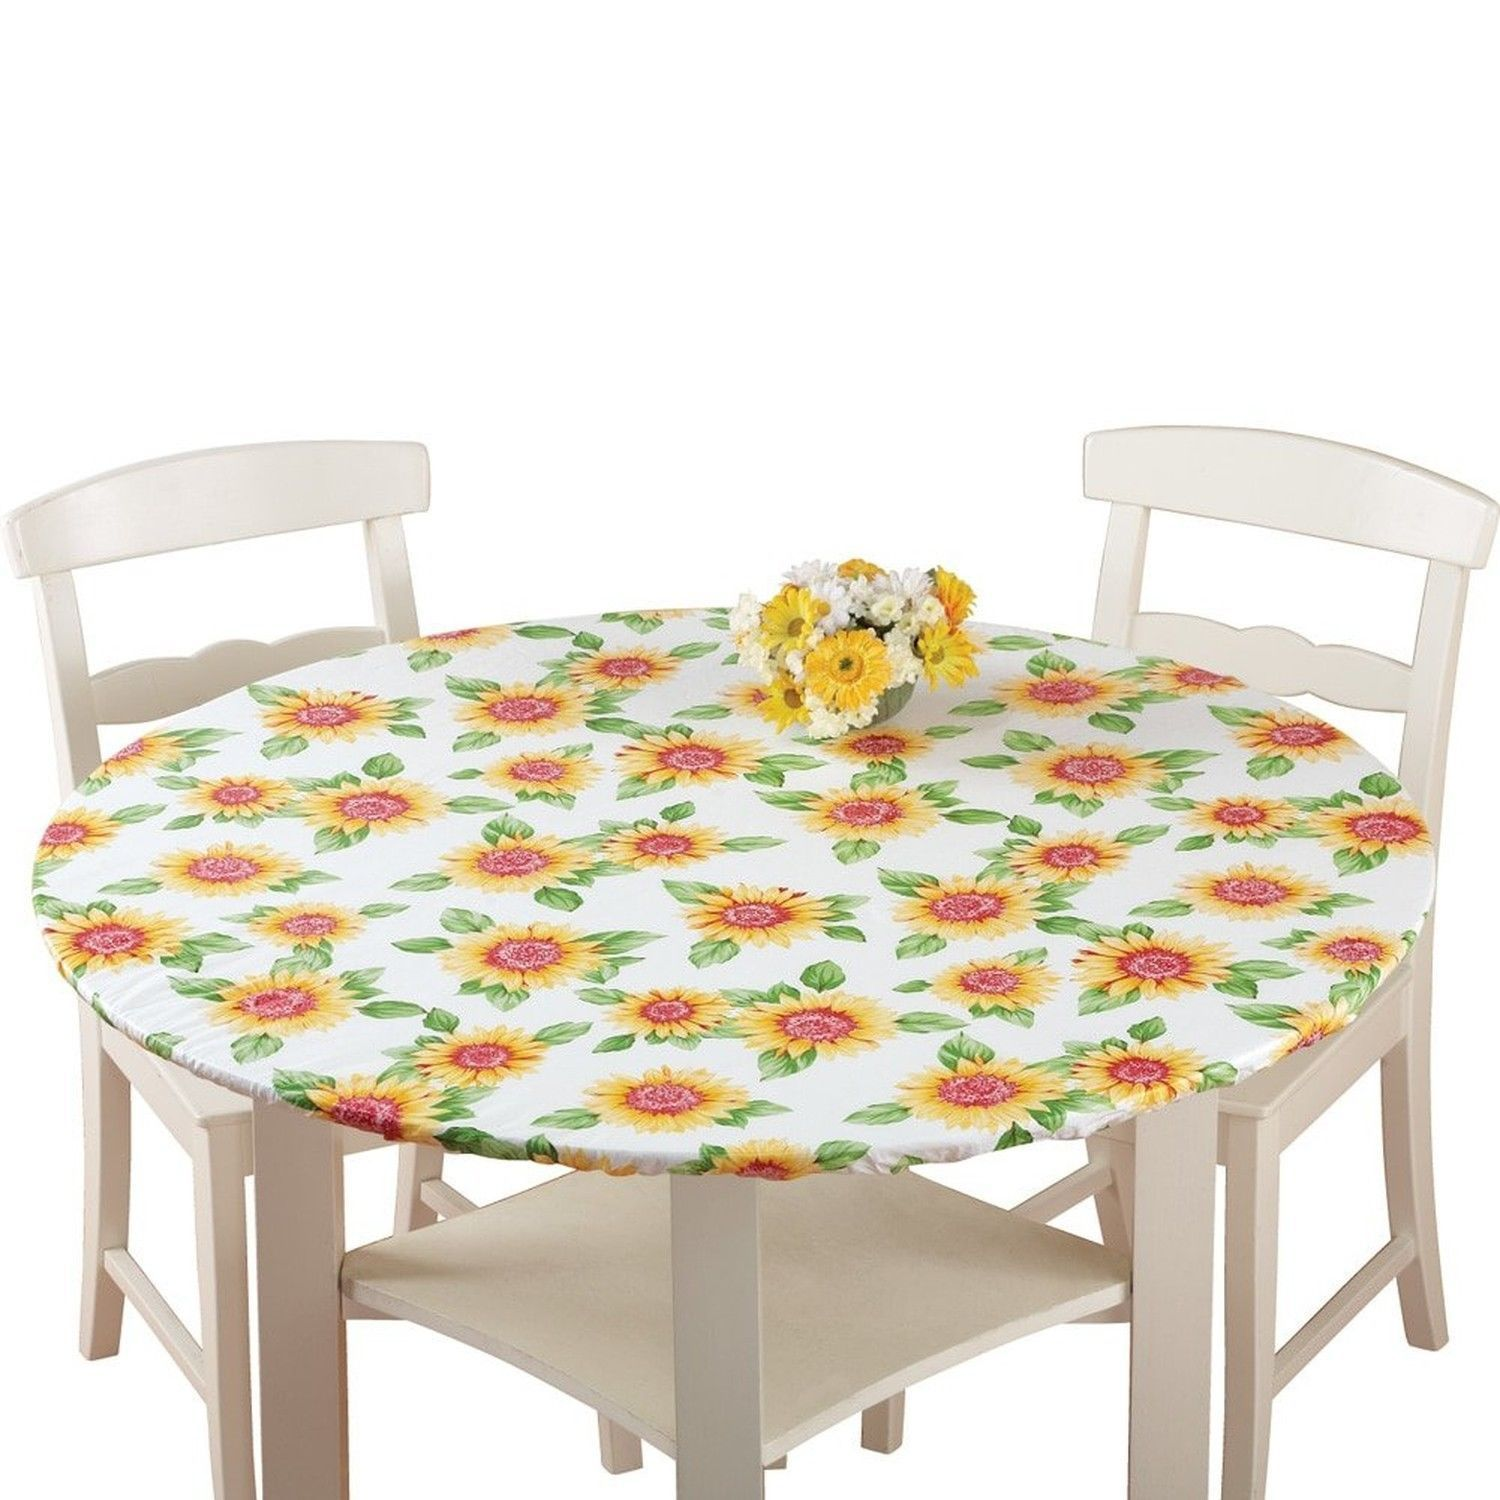 Fitted Elastic Table Cover Sunflower Round Durable Vinyl